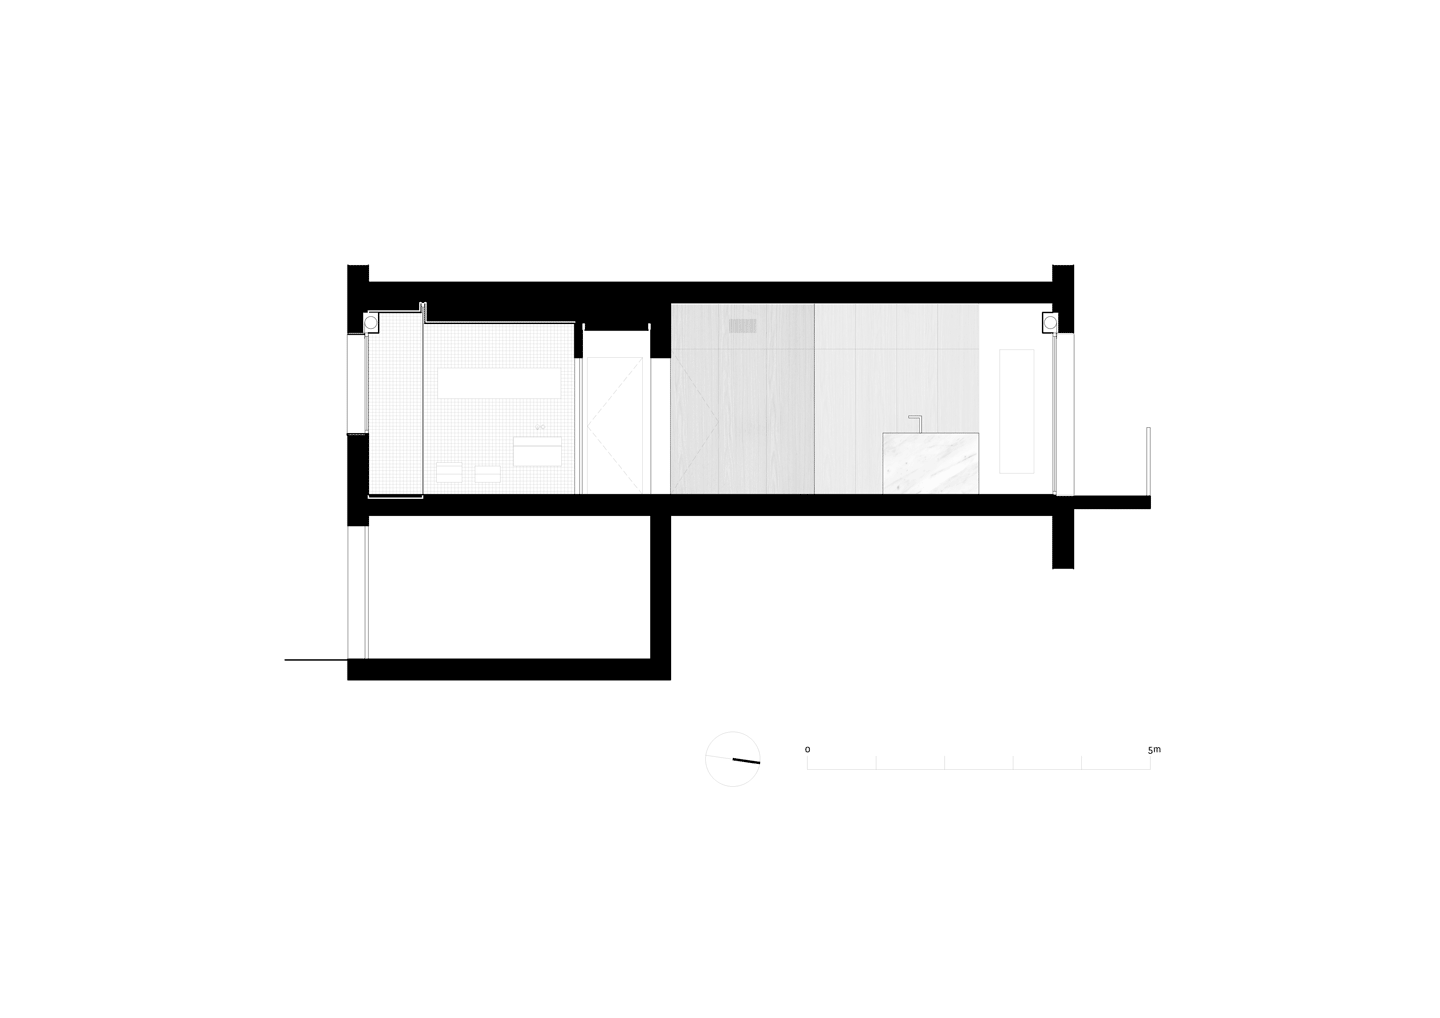 Apartment in Pisa - Section